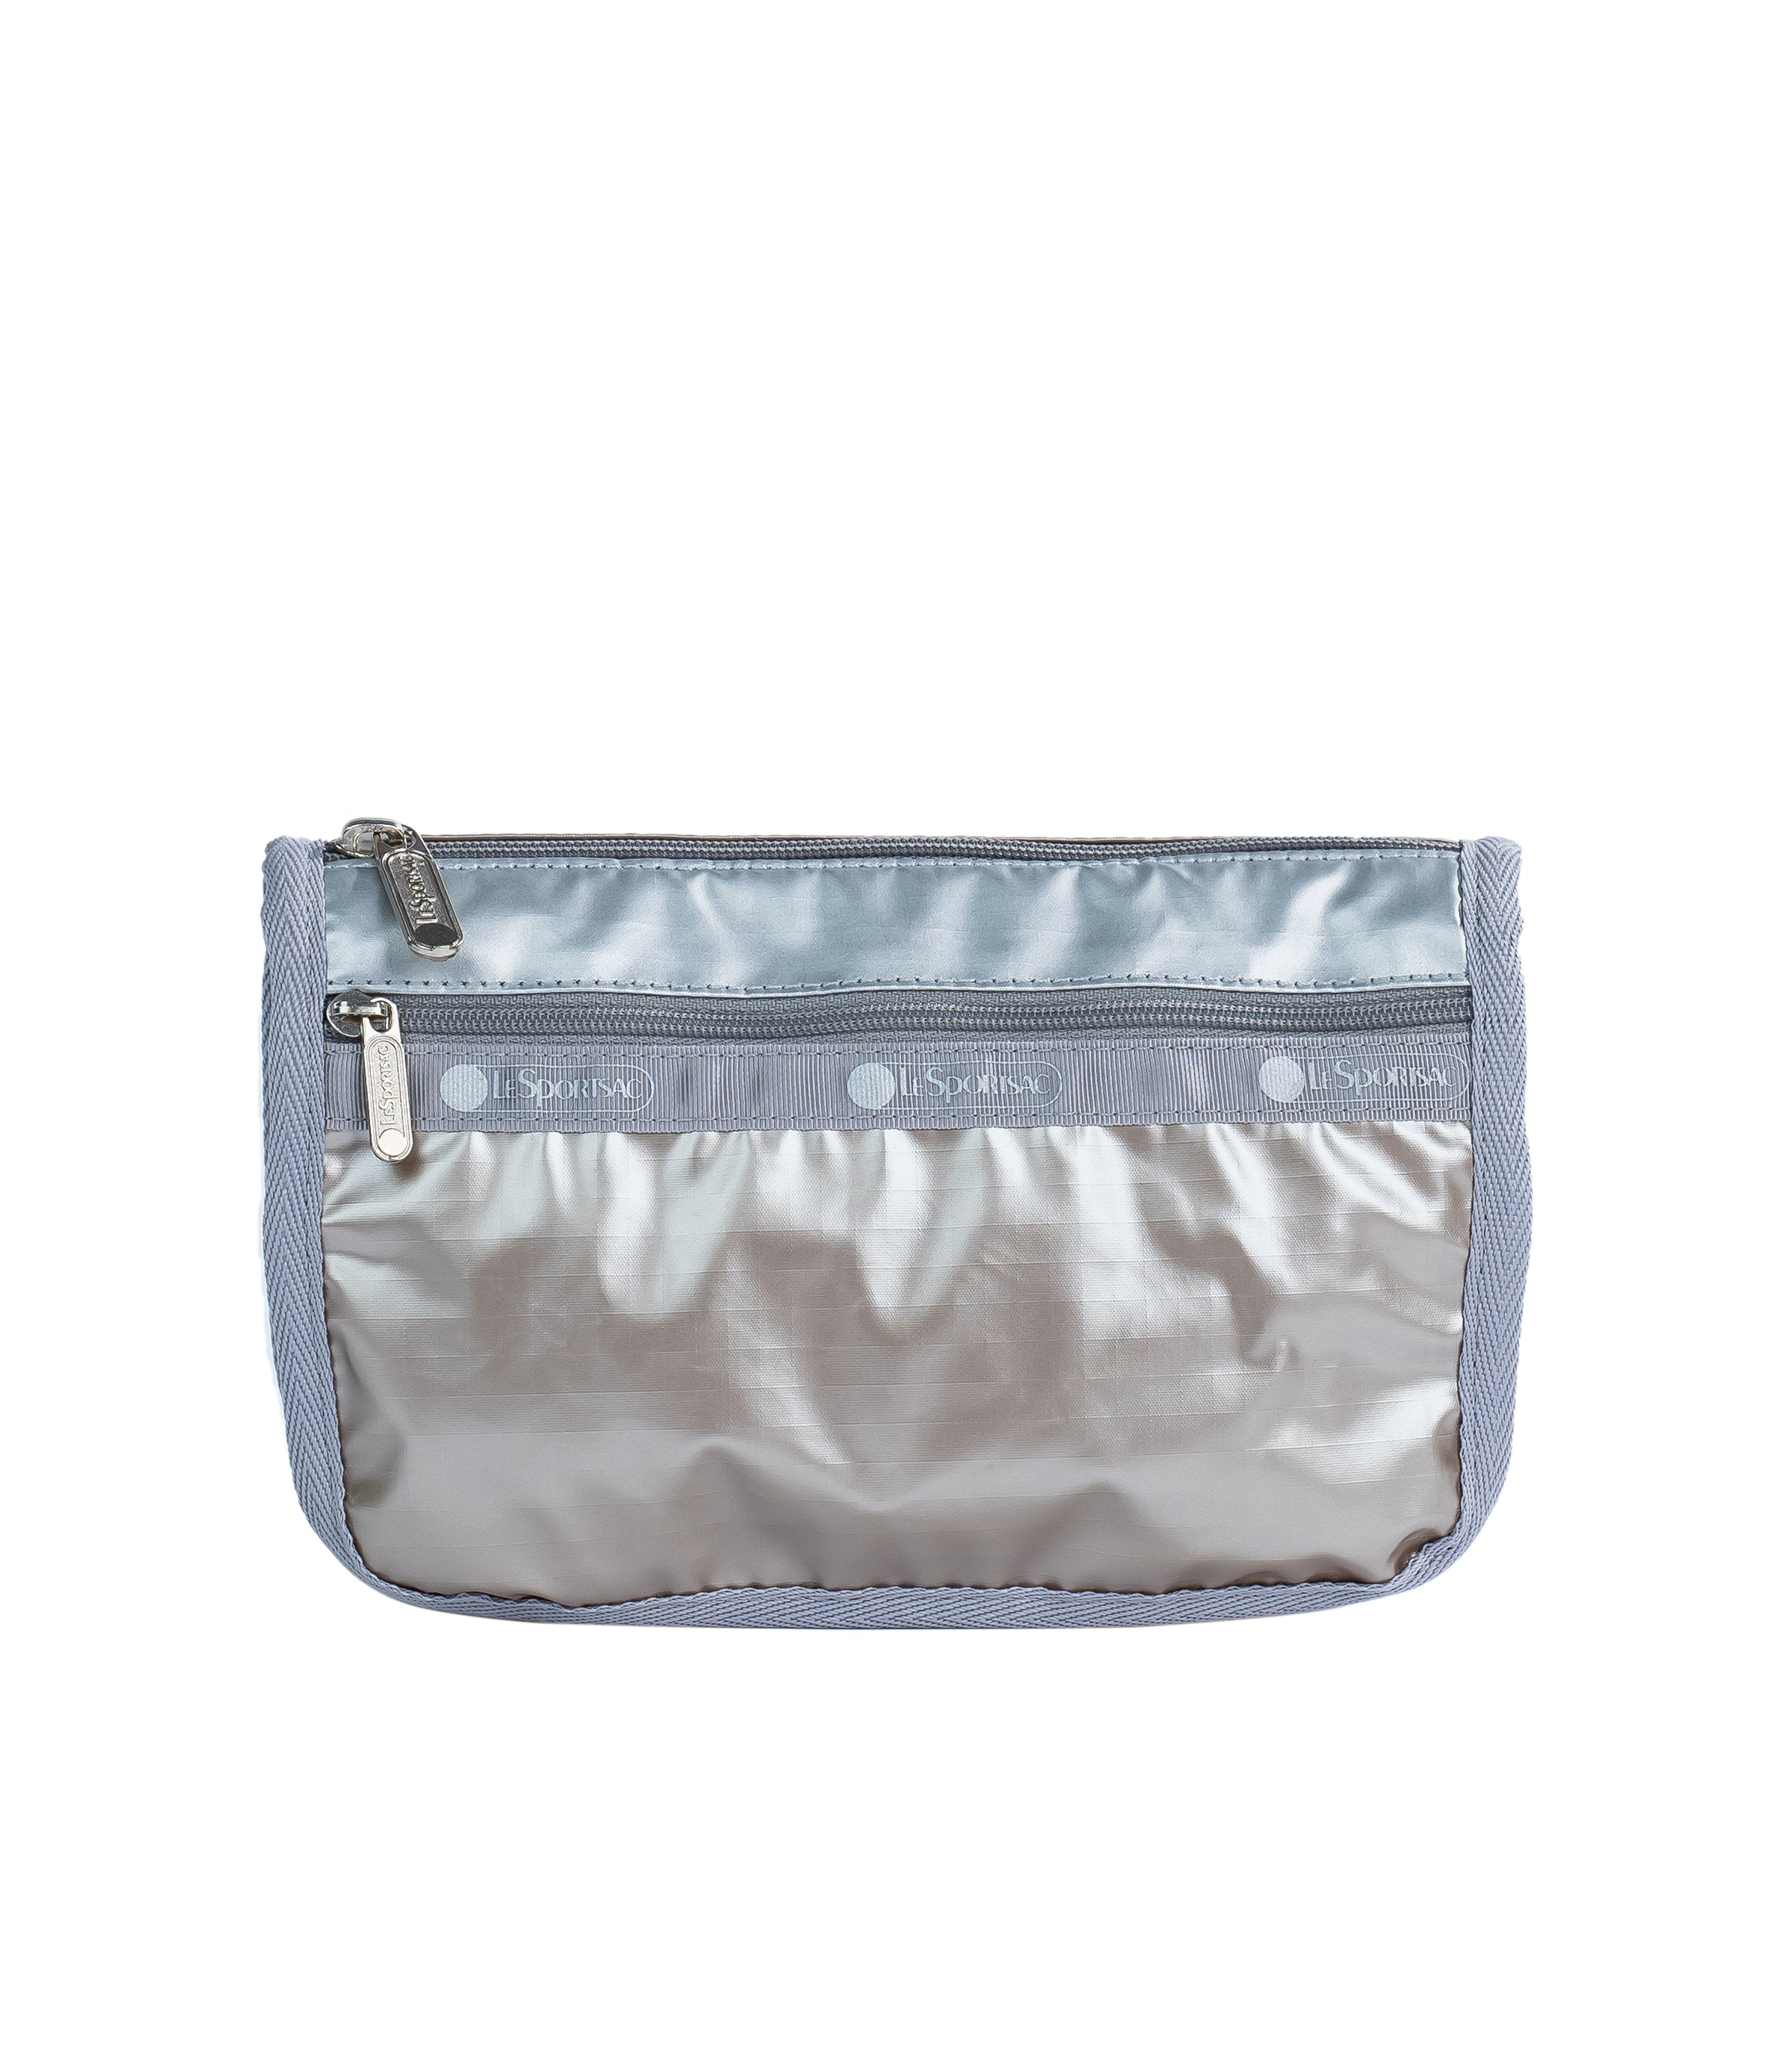 LeSportsac - Accessories - Travel Cosmetic - Opal Mist Metallic